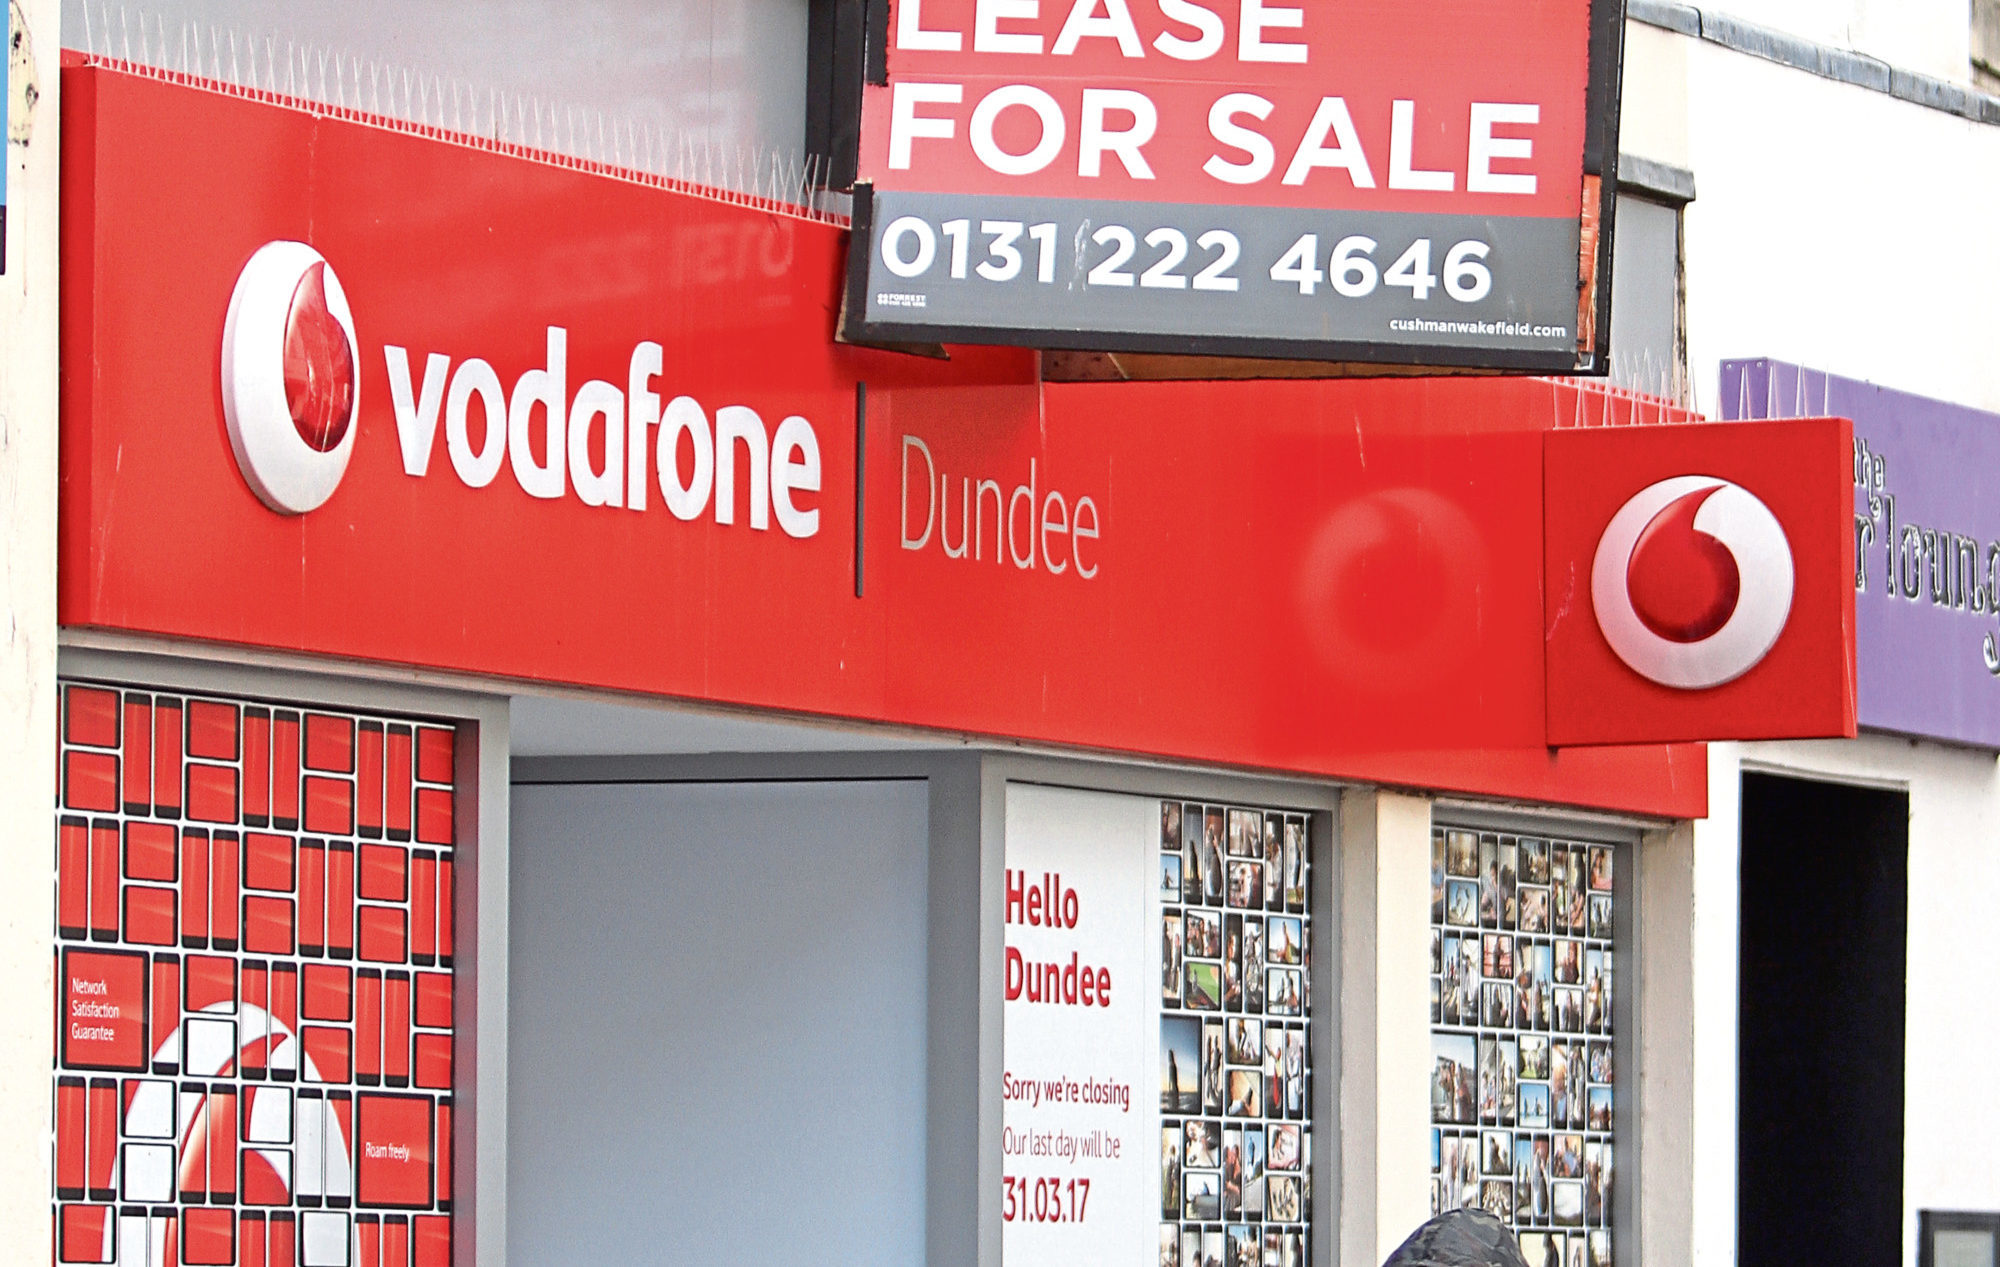 The former Vodafone shop set to be transformed into Mangobean